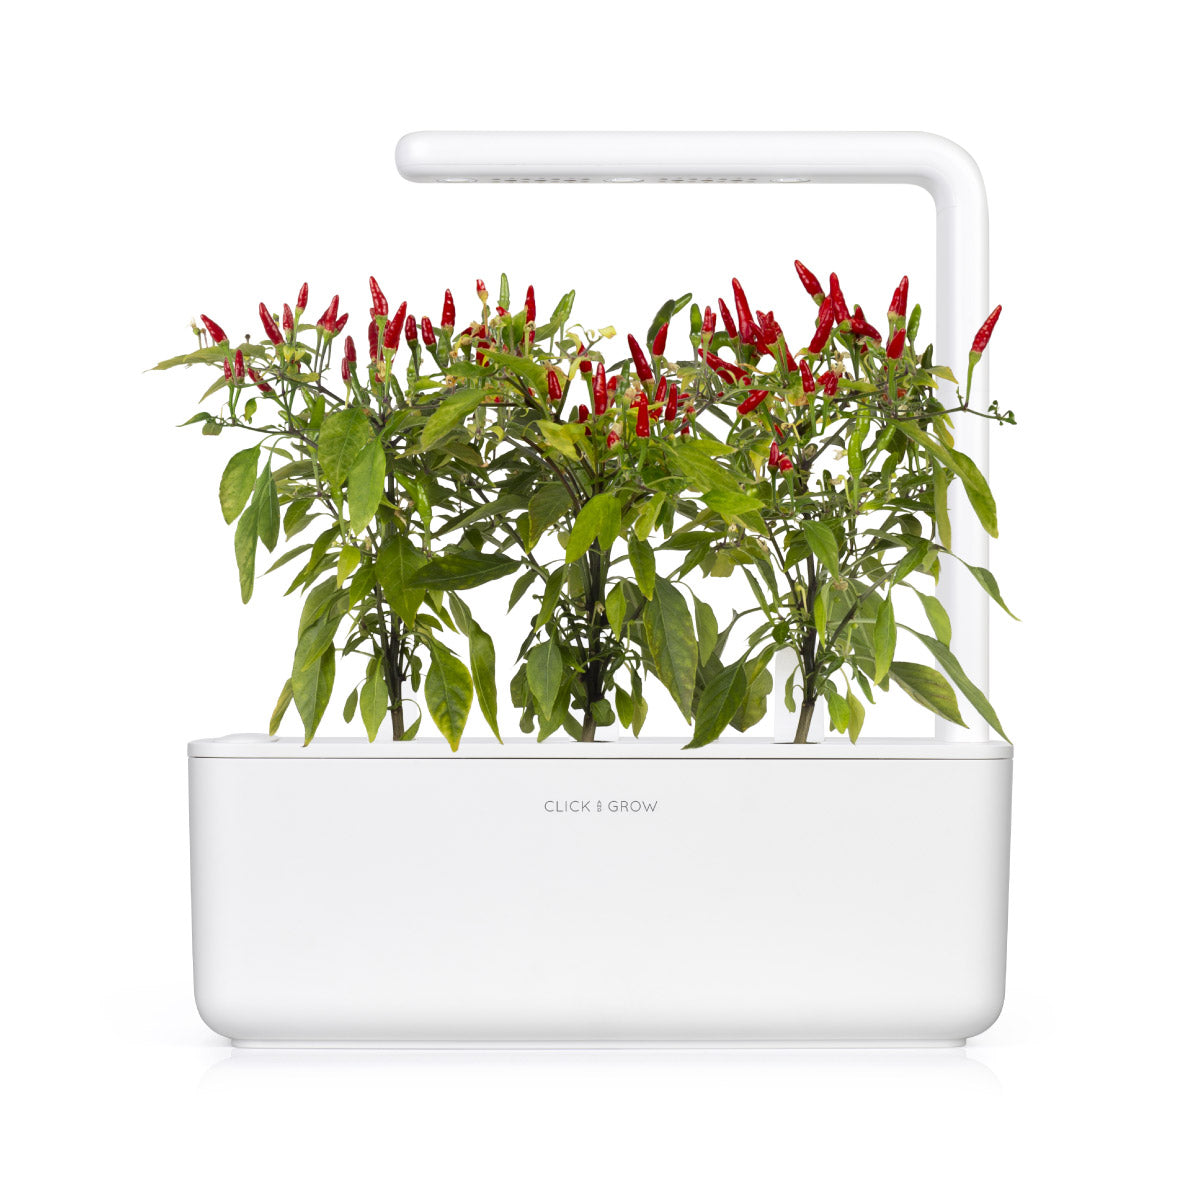 Piri Piri Chili Pepper grow chili pepper at home Click & Grow indoor garden